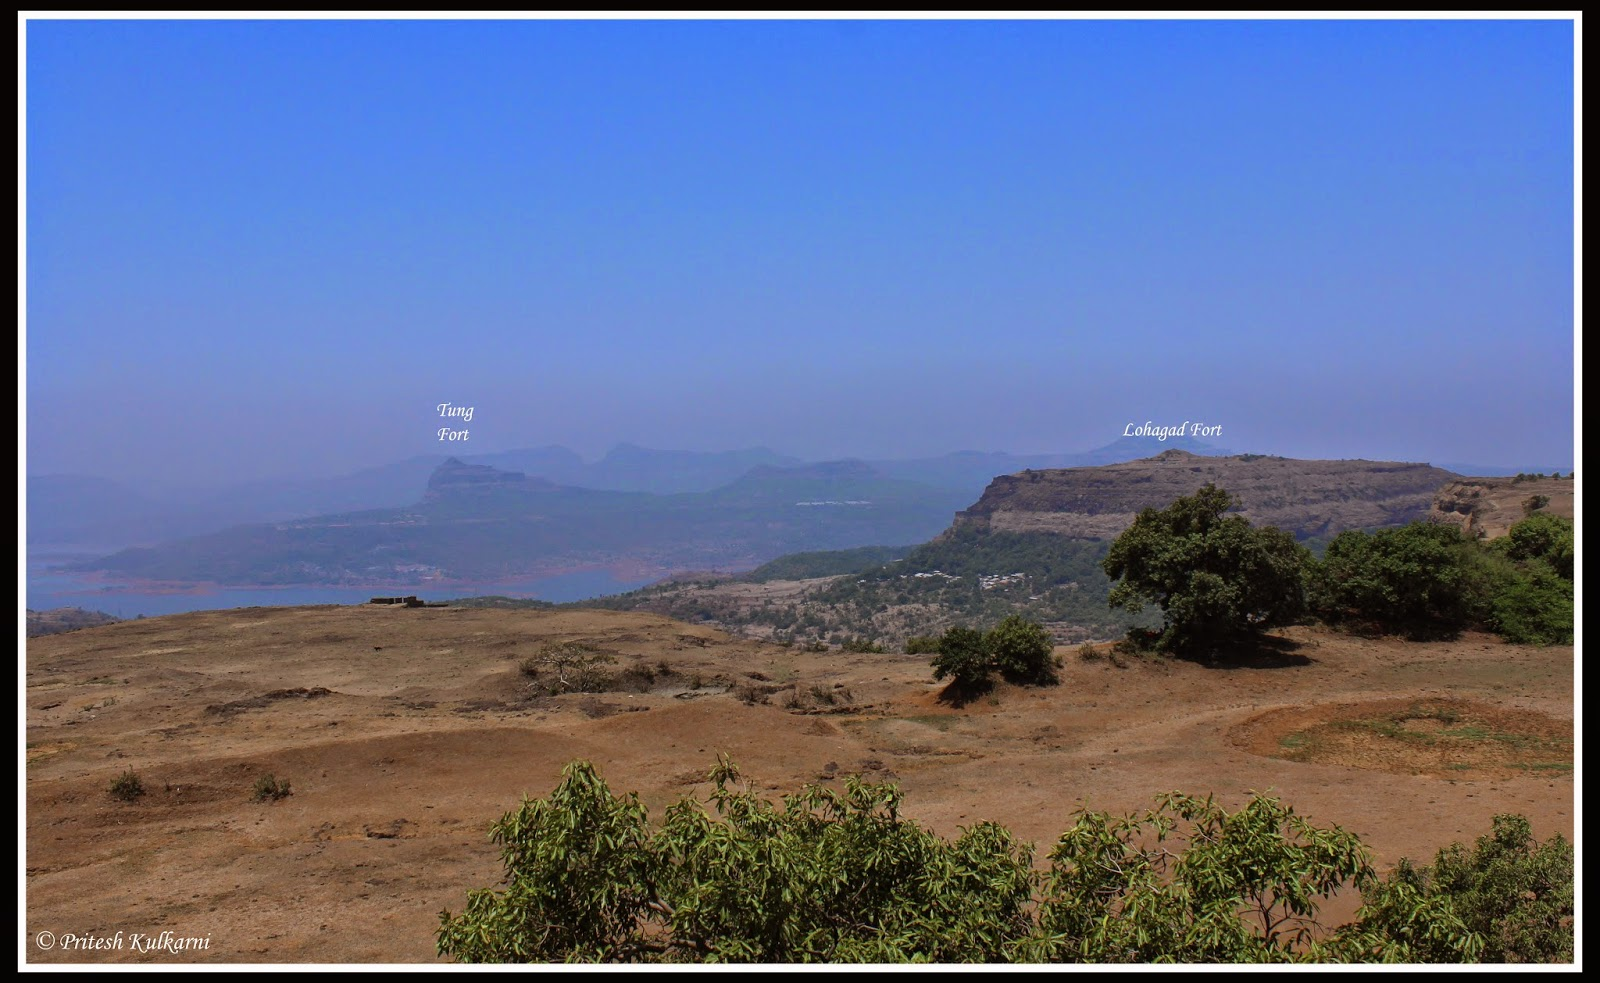 Fort Lohagad and Fort Tung